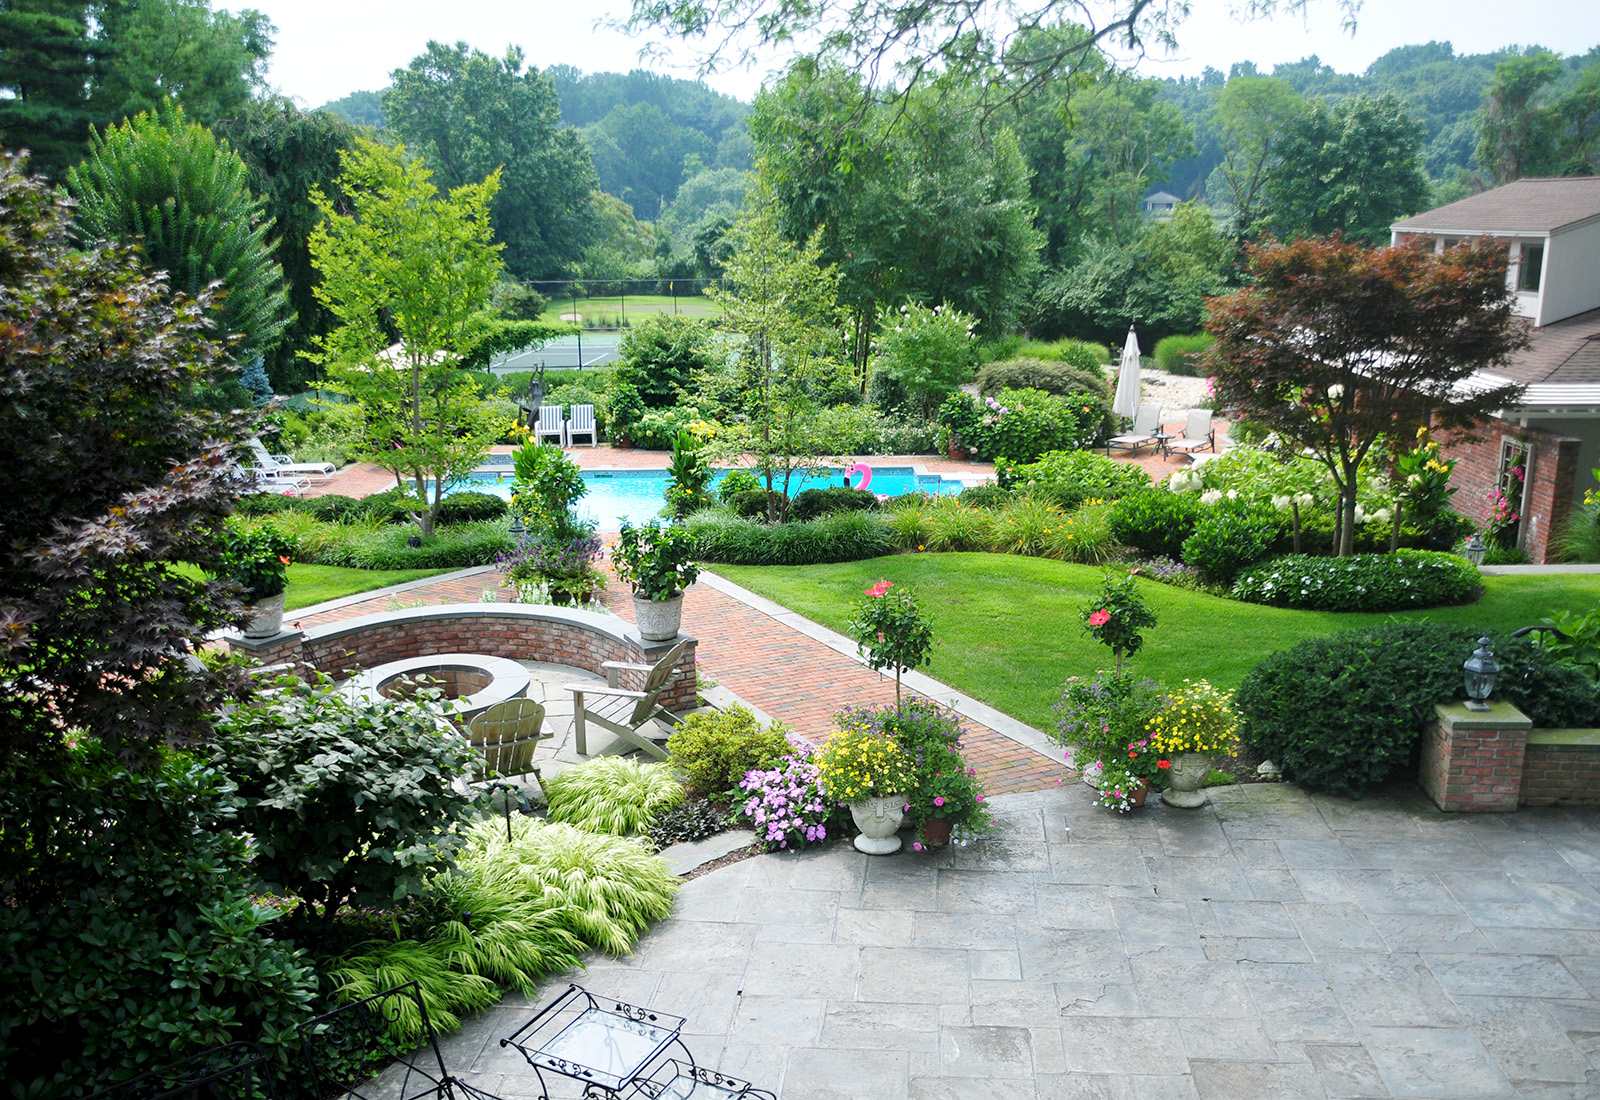 Long Island Landscaping Services Pool and Spa, Masonry